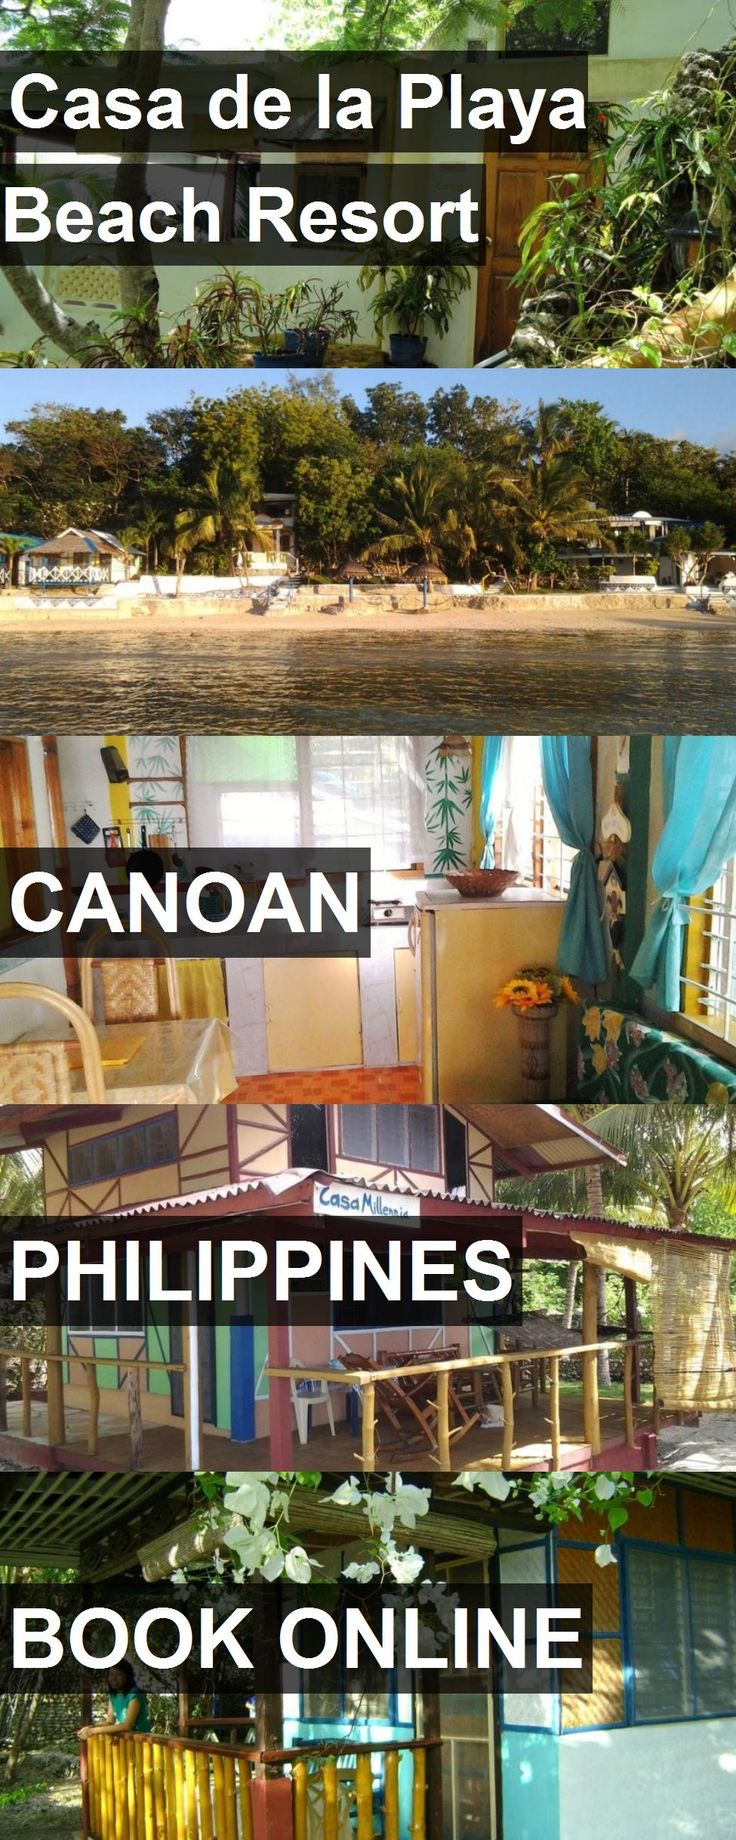 Hotel Casa de la Playa Beach Resort in Canoan, Philippines. For more information, photos, reviews and best prices please follow the link. #Philippines #Canoan #CasadelaPlayaBeachResort #hotel #travel #vacation